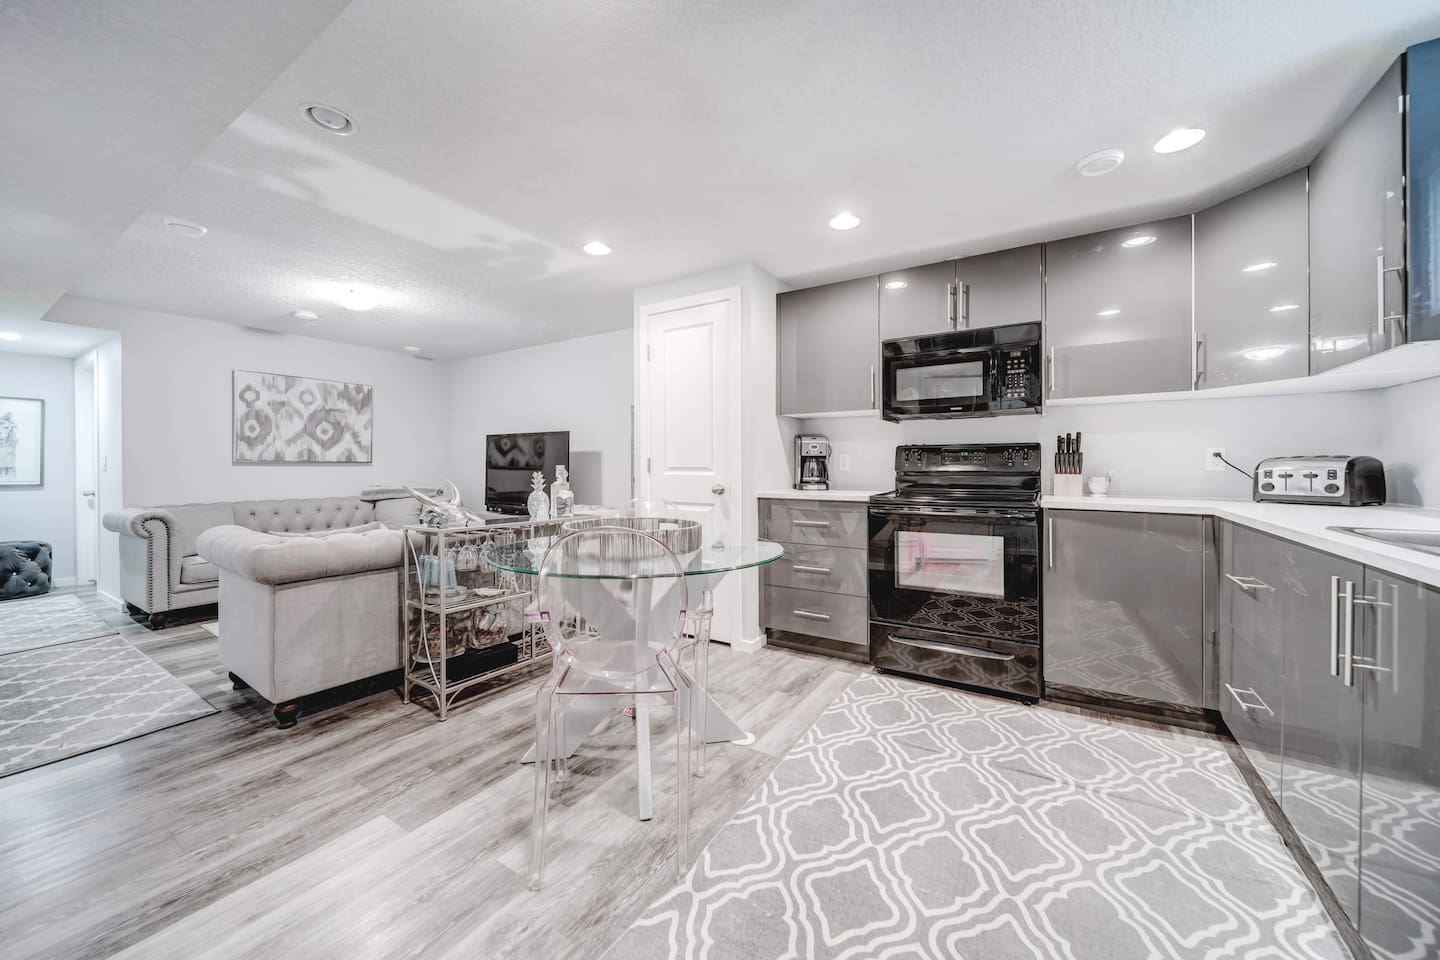 This newly renovated basement suite is decorated with modern décor and high end finishing's.